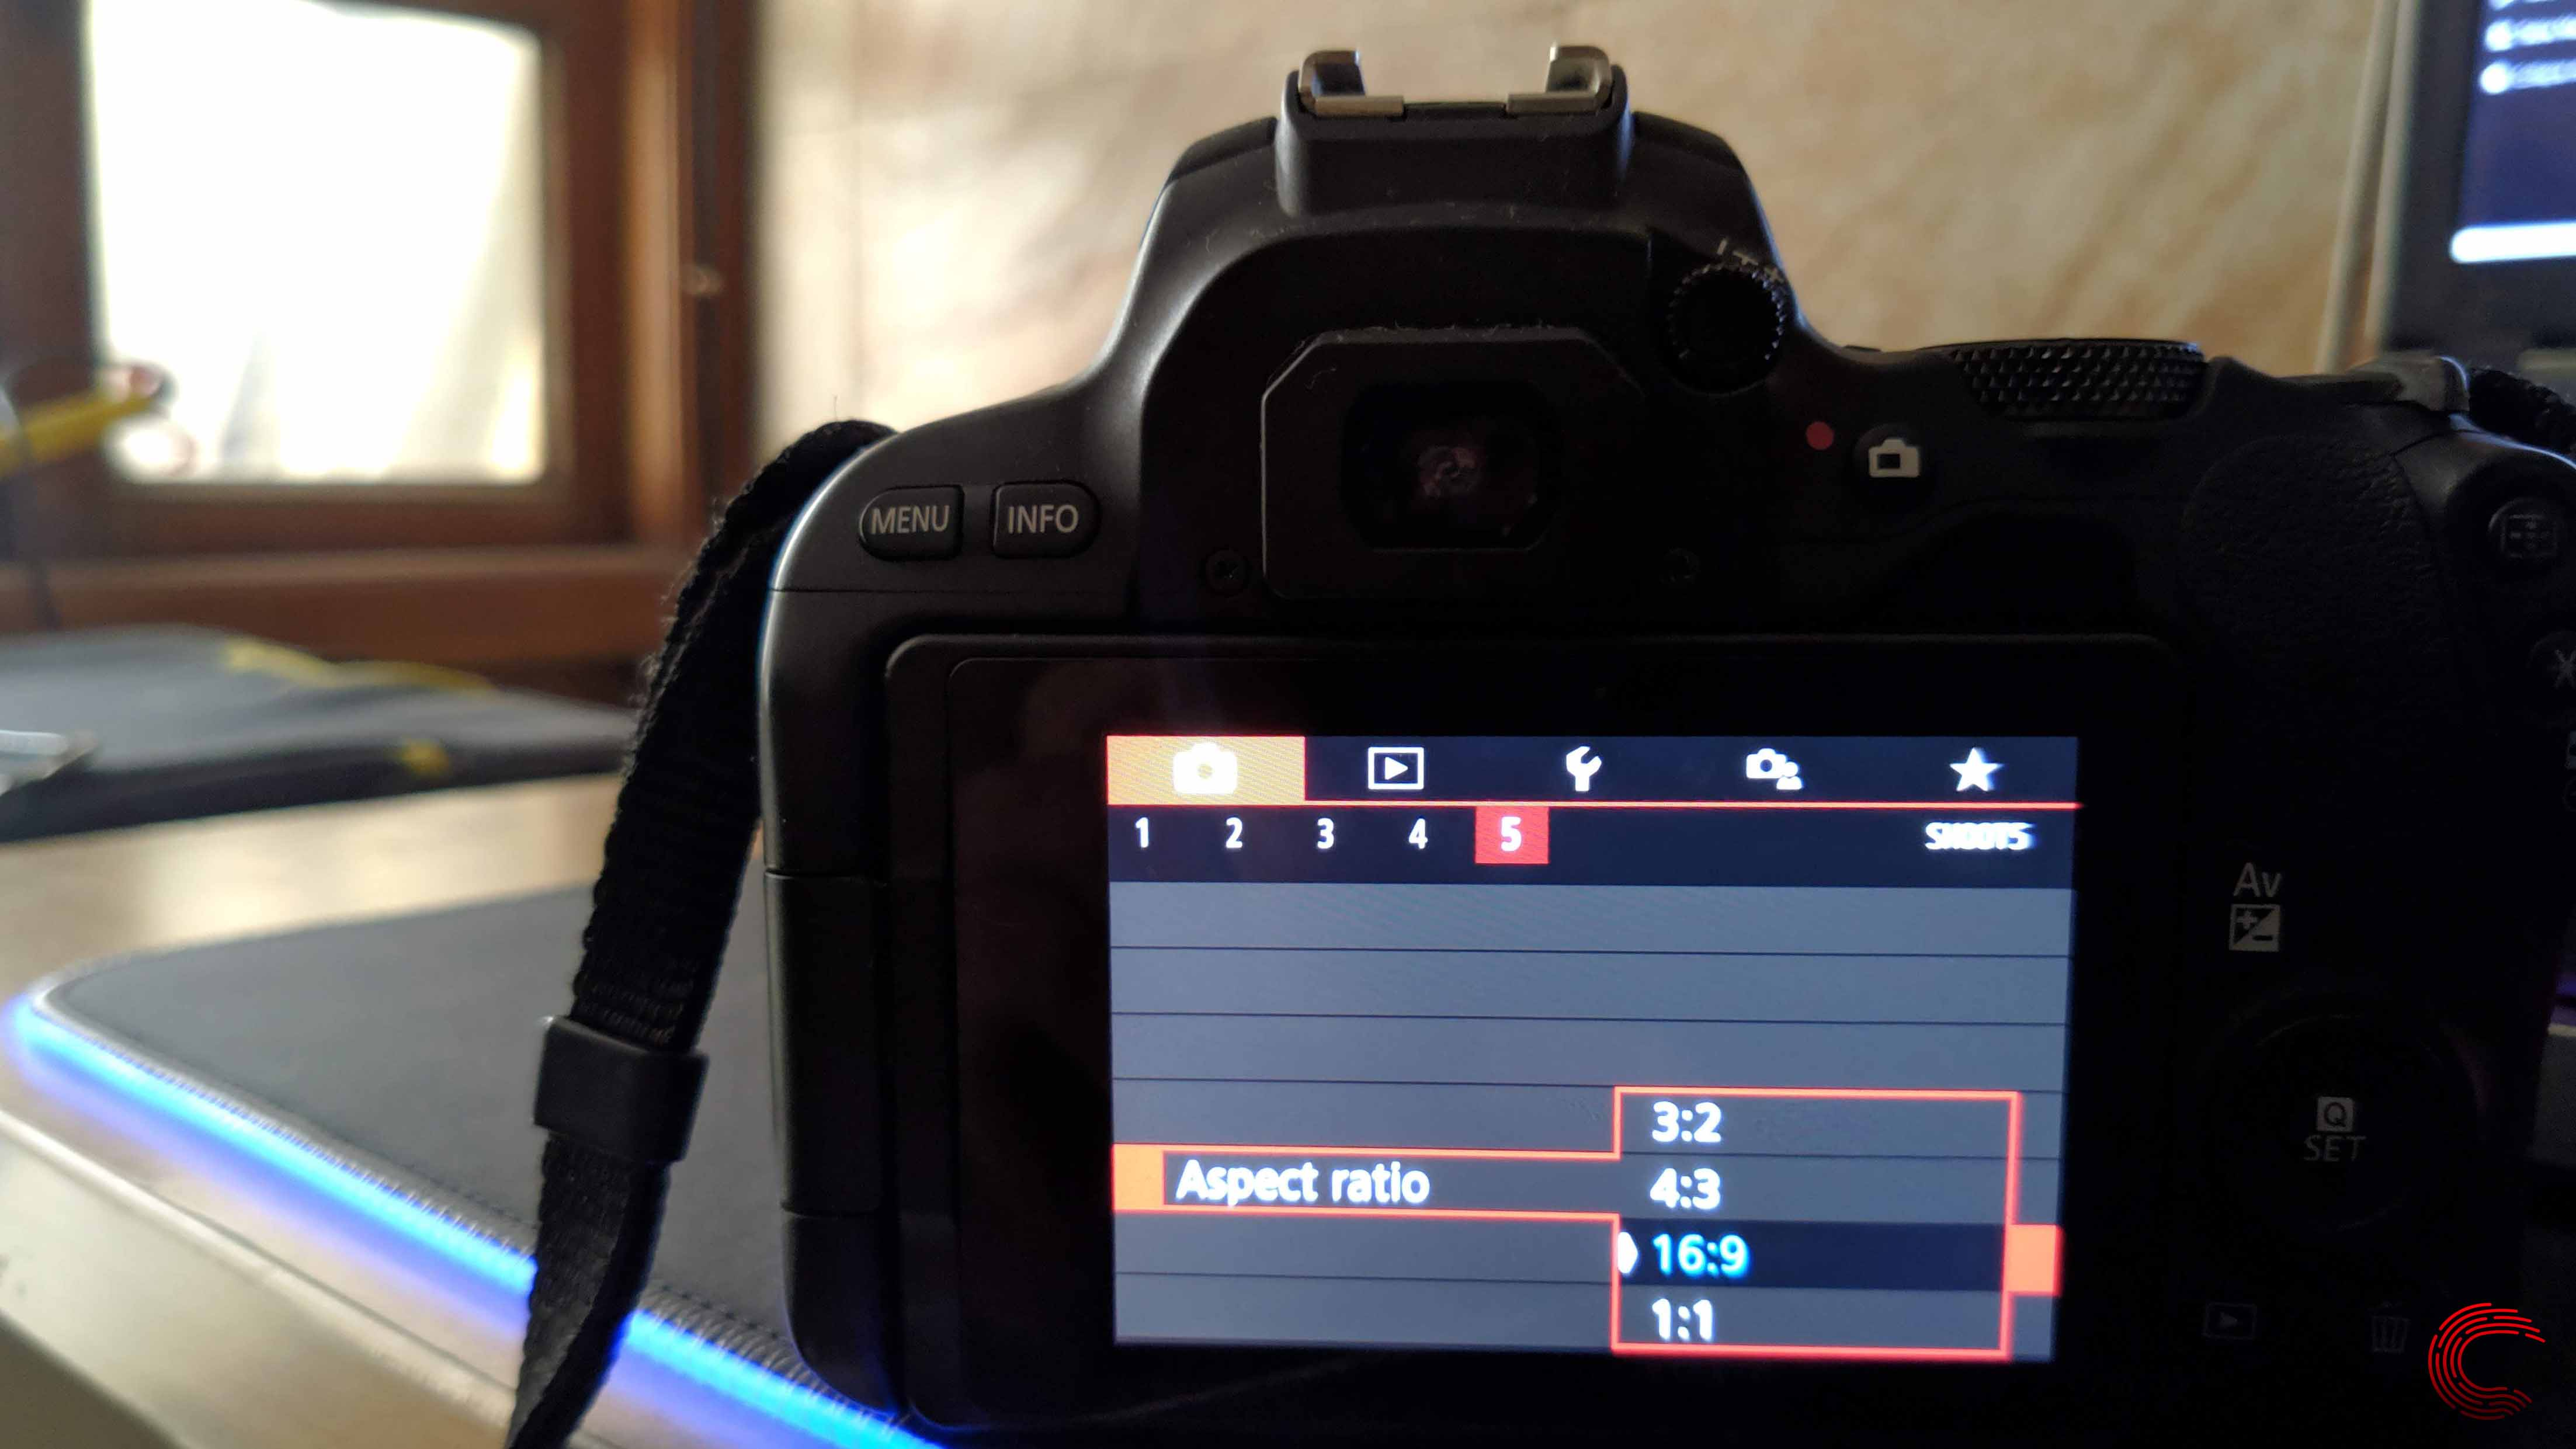 What are aspect ratios and how to use them? | Candid.Technology